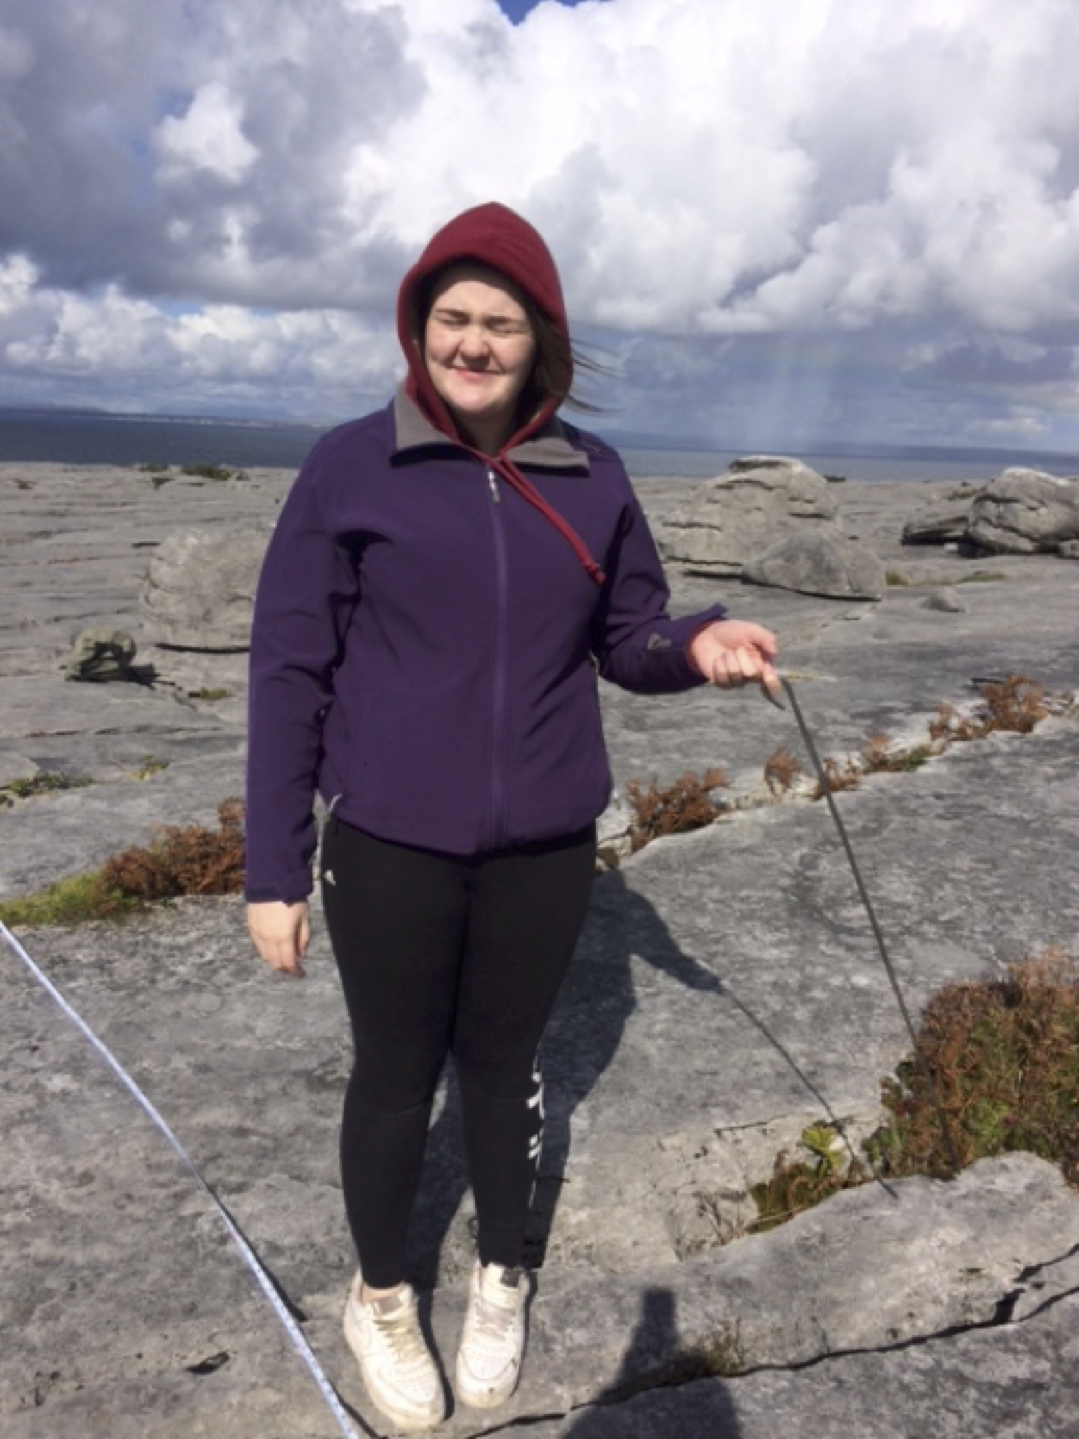 Sept 2017: Leaving Certificate Student from Desmond College Newcastle West enjoying their Trip to the Burren